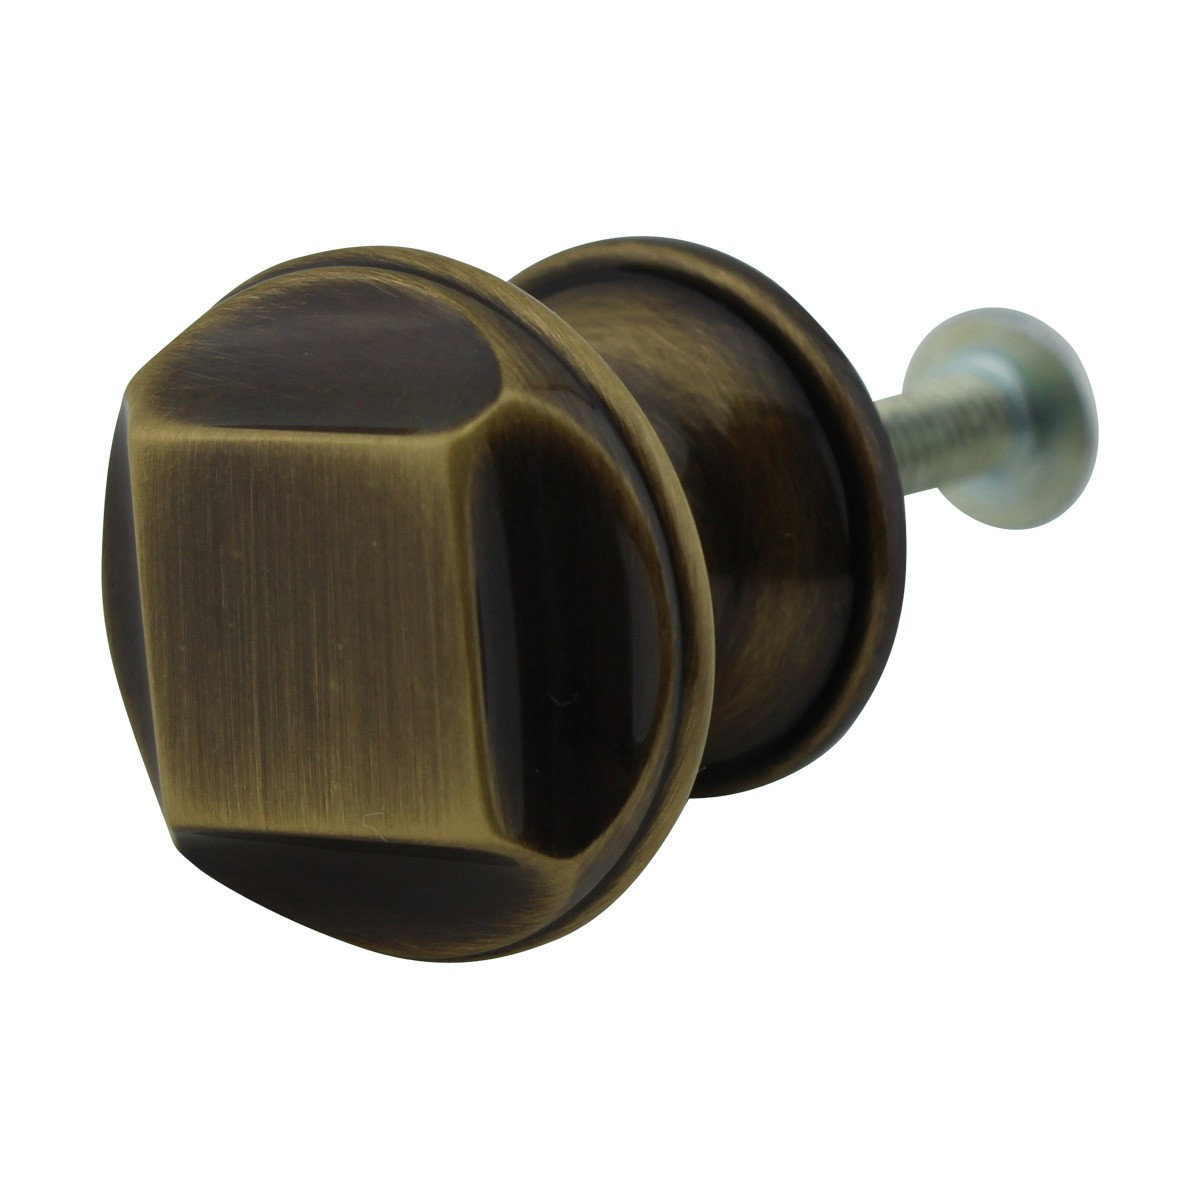 6 Cabinet Knob Antique Solid Brass 1 Dia Cabinet Hardware Cabinet Knobs Cabinet Knob